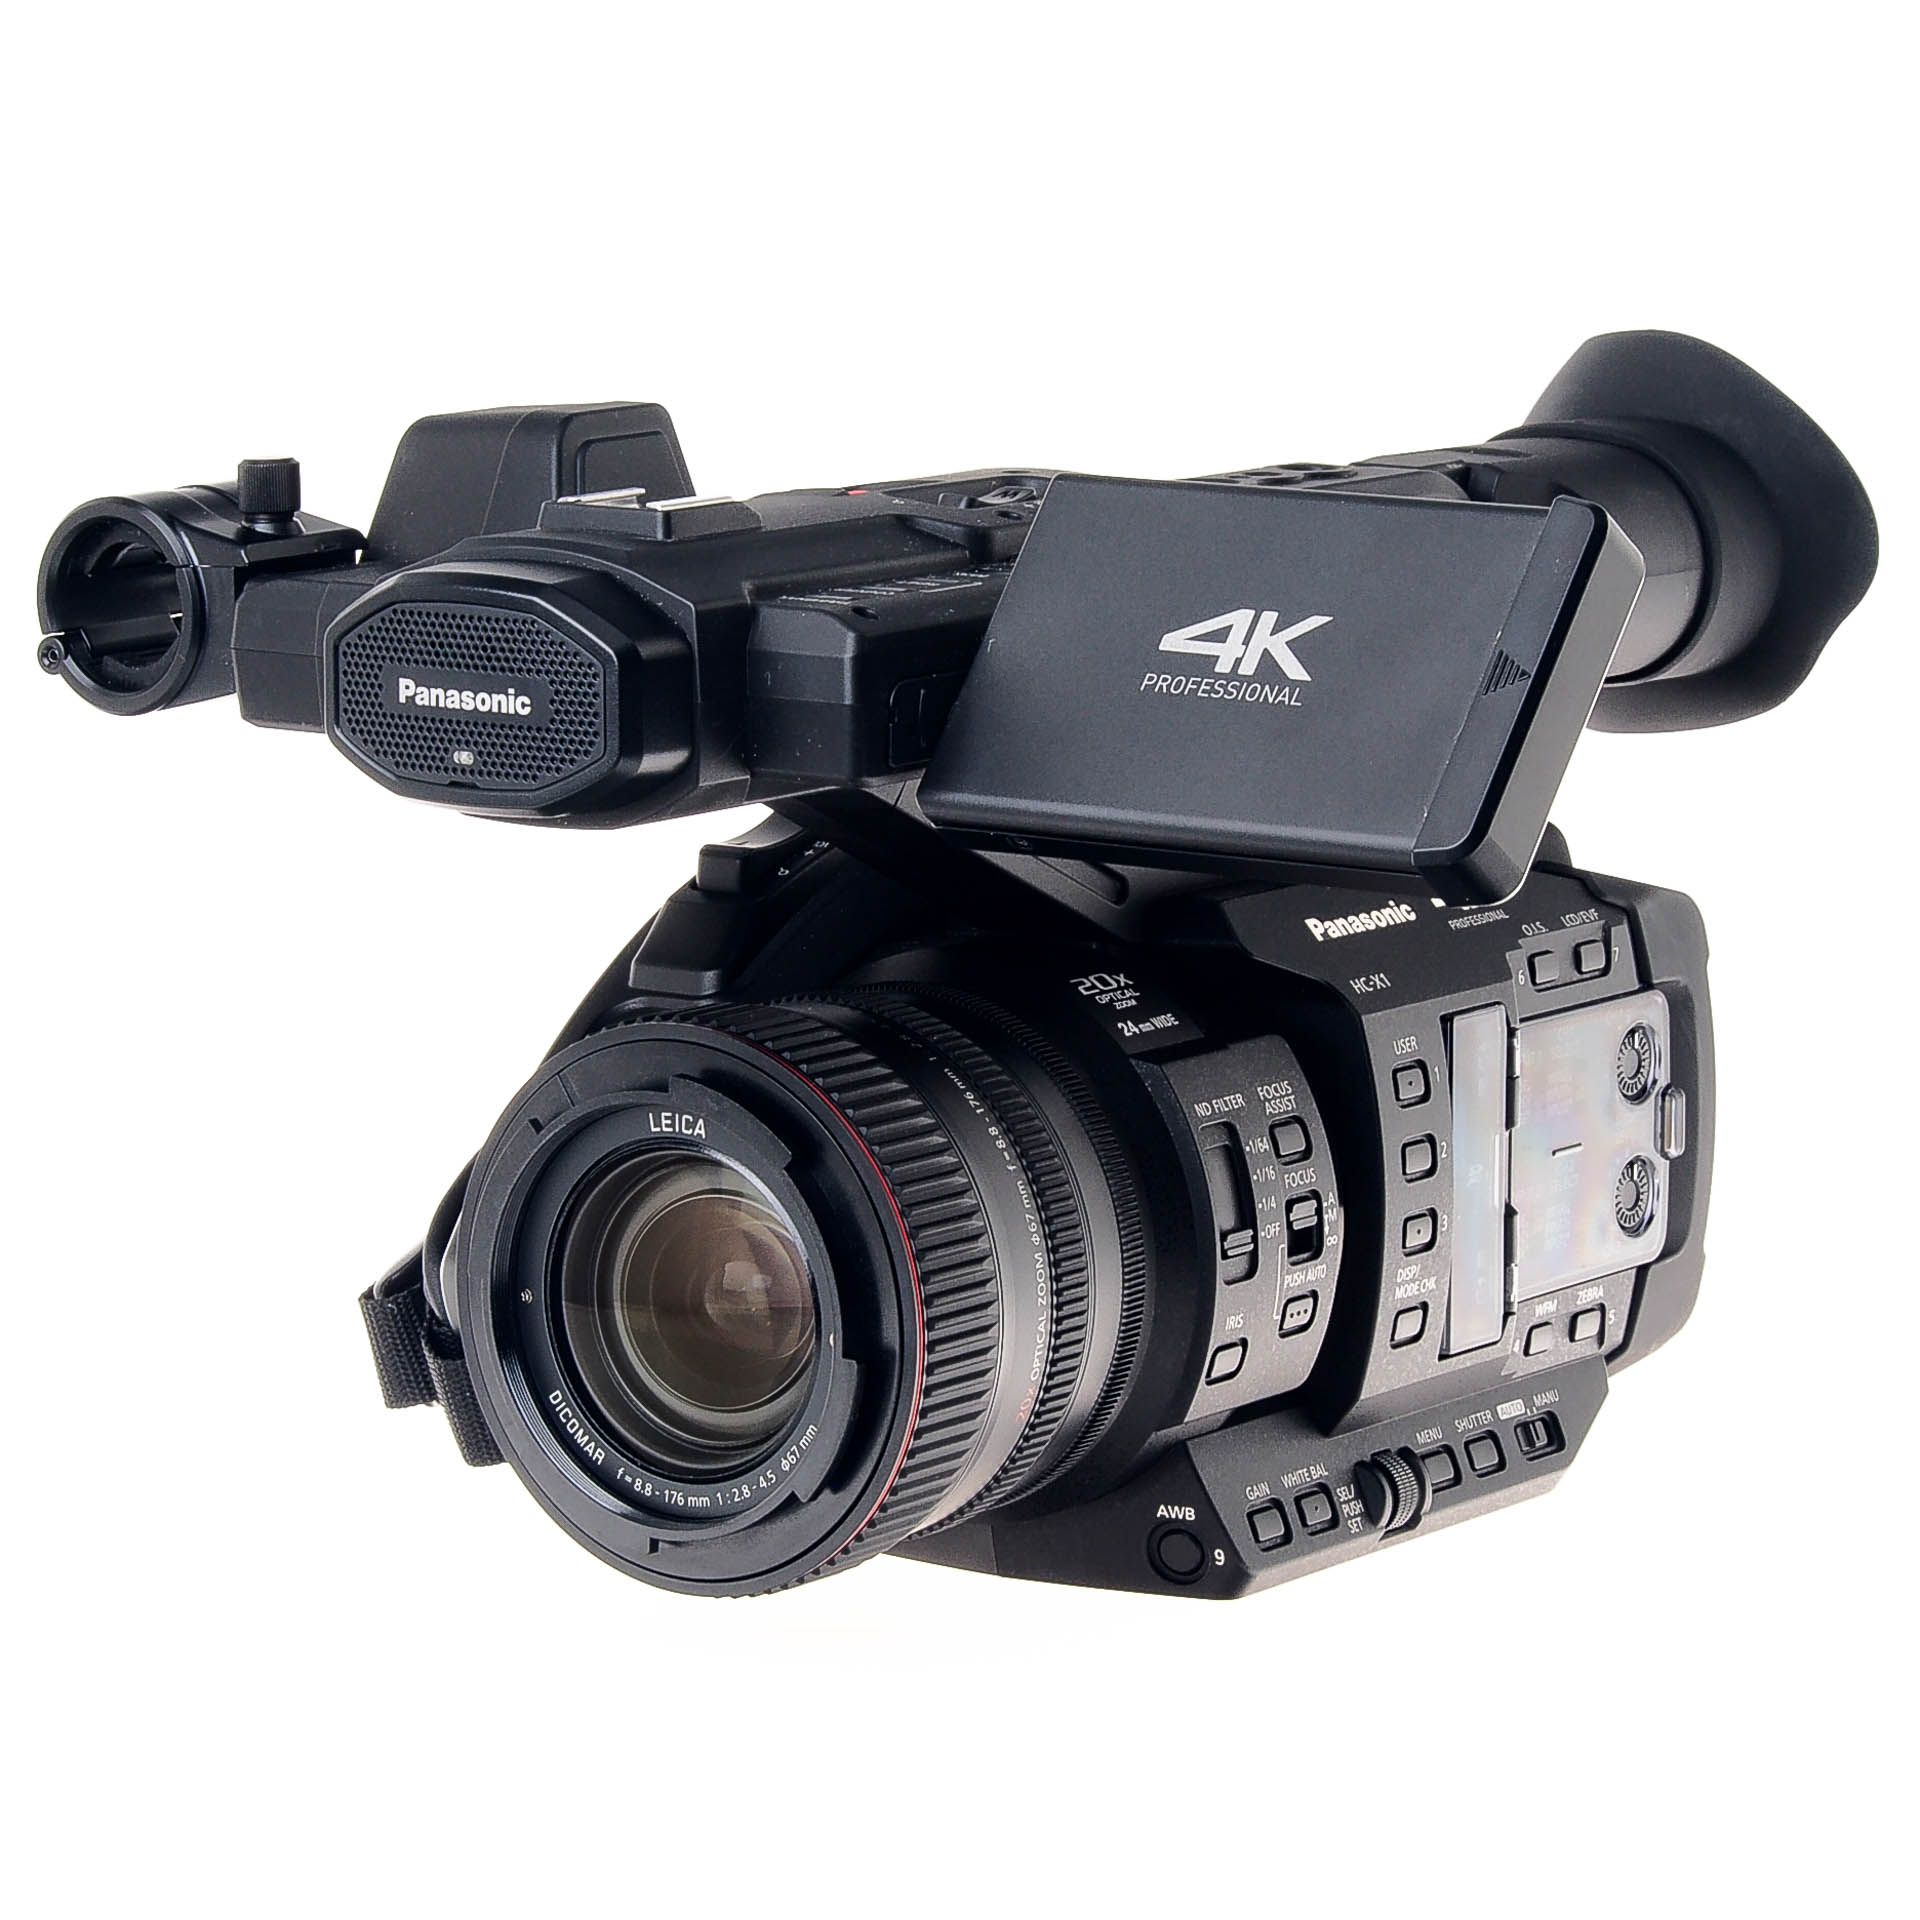 Used Cameras Video - National Camera Exchange